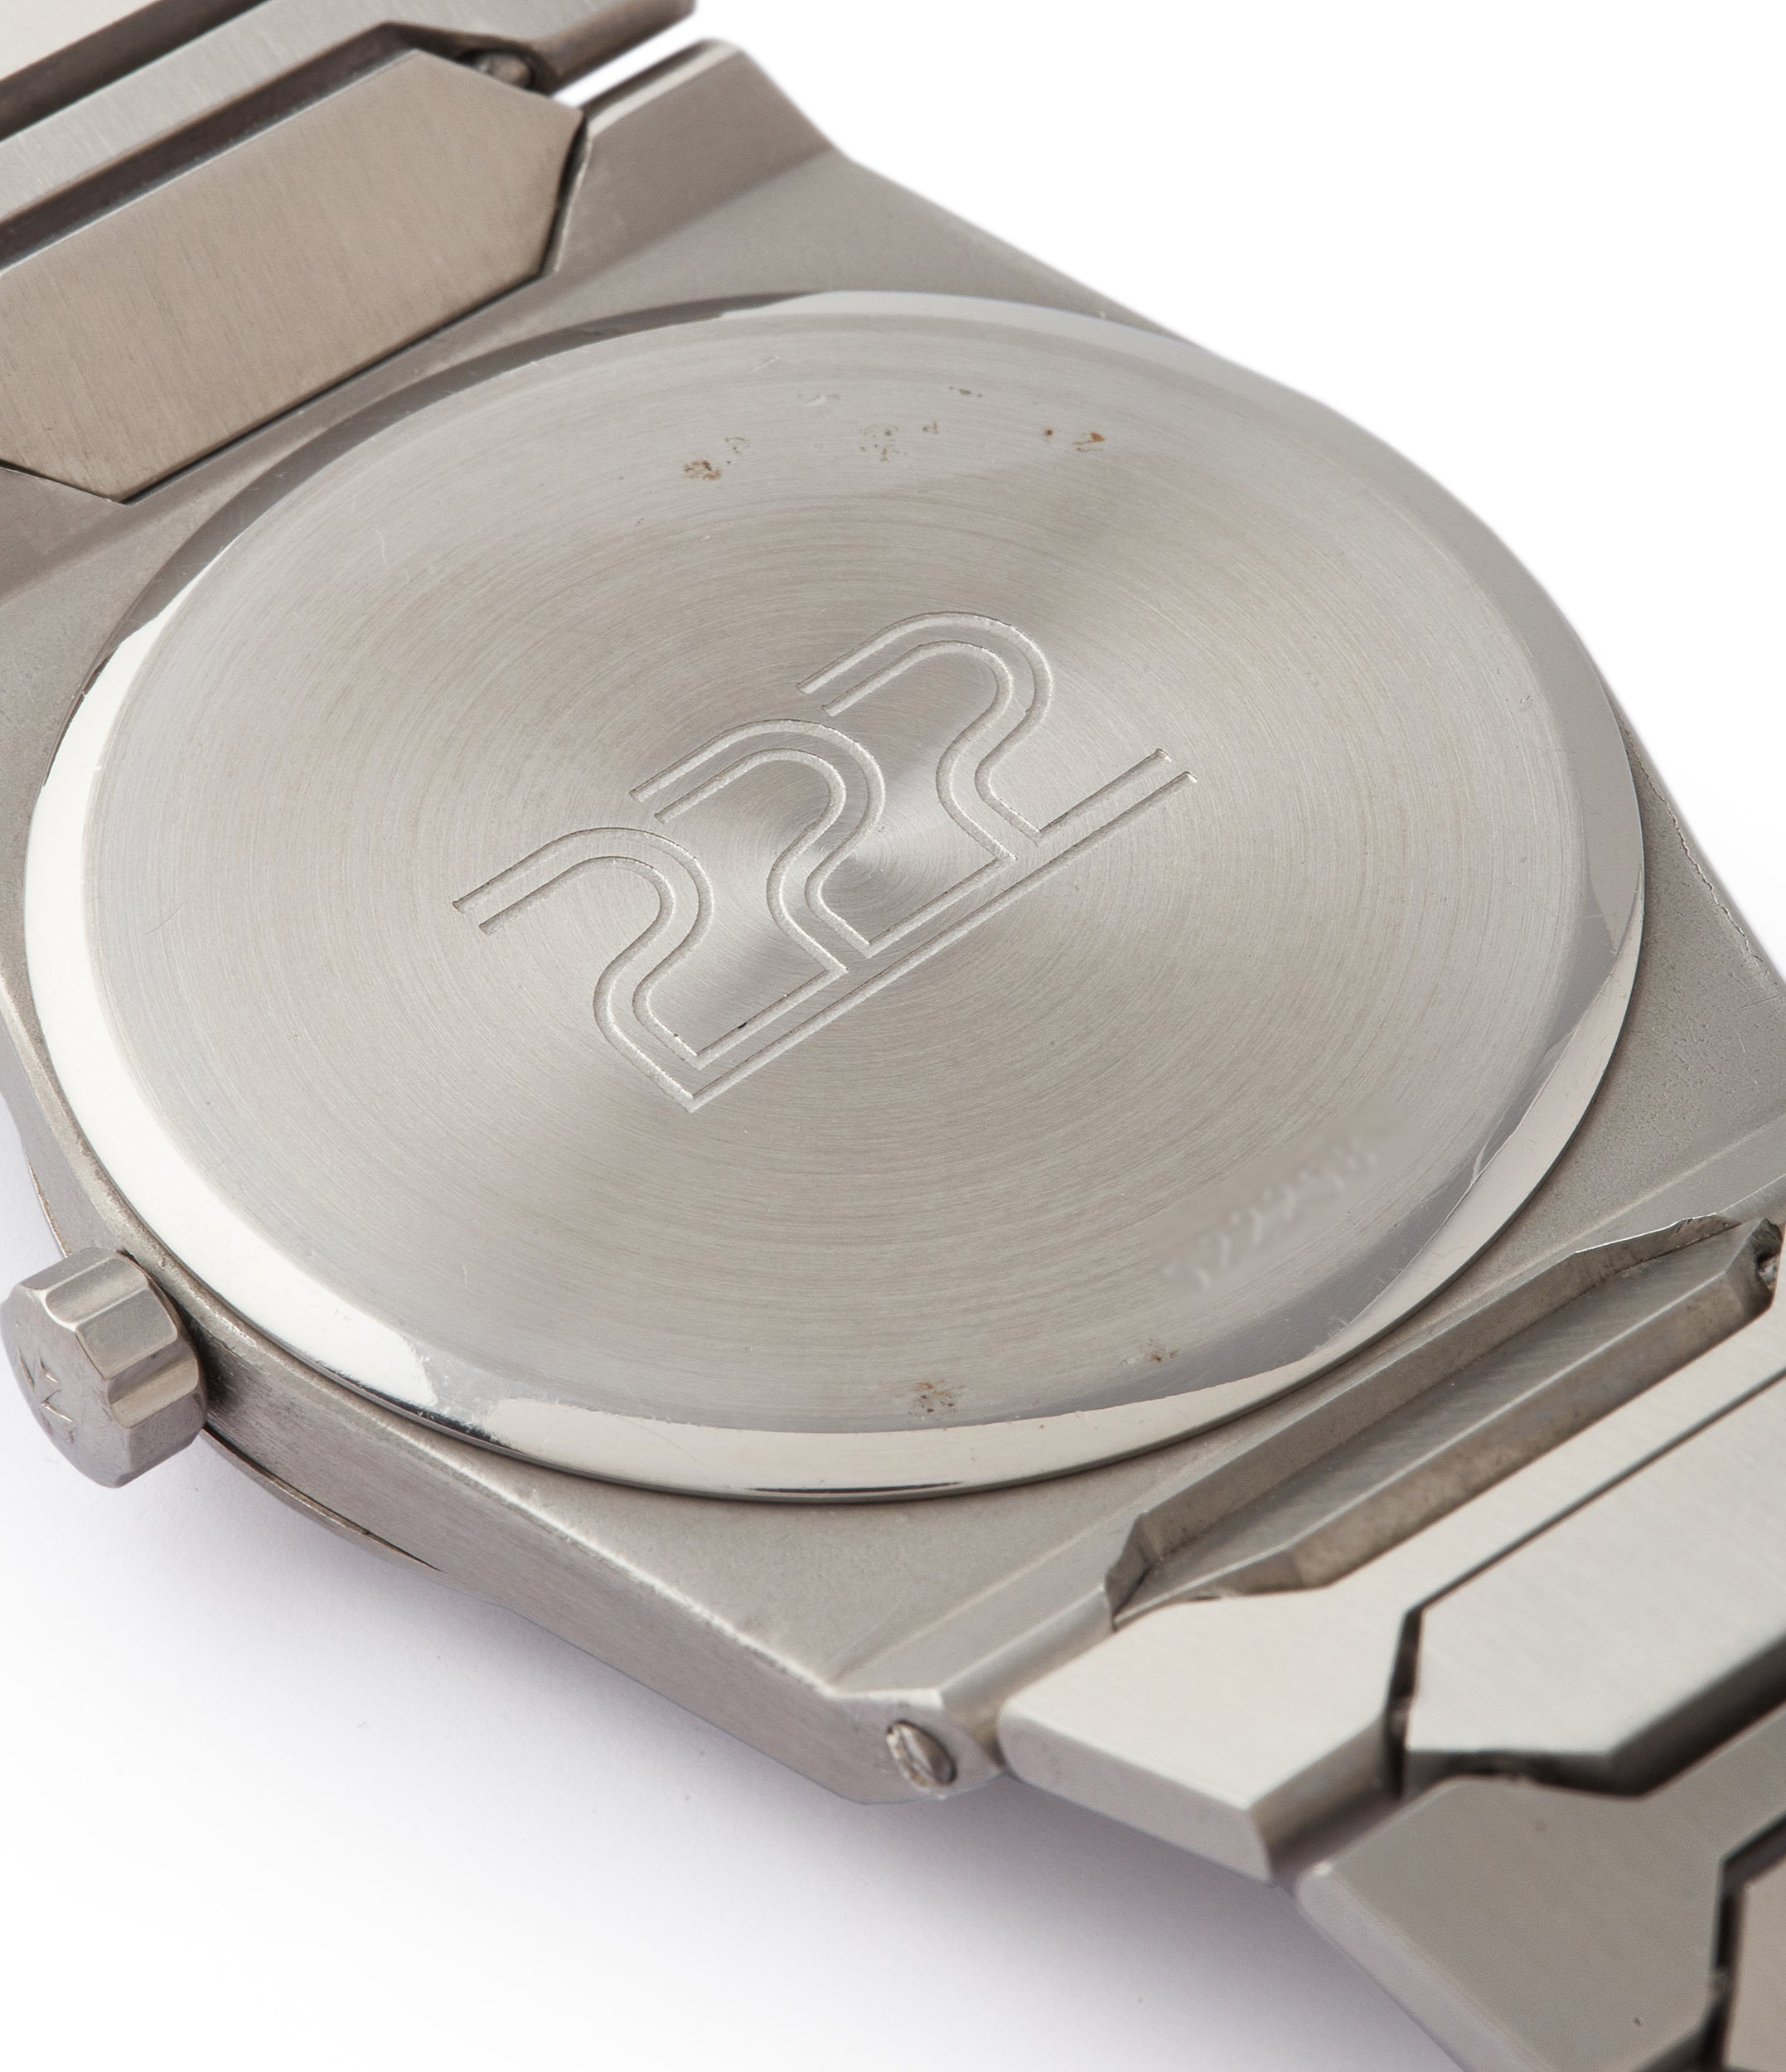 Vacheron Constantin 222 caseback showing the 222 engraving in stainless steel for A Collected Man London